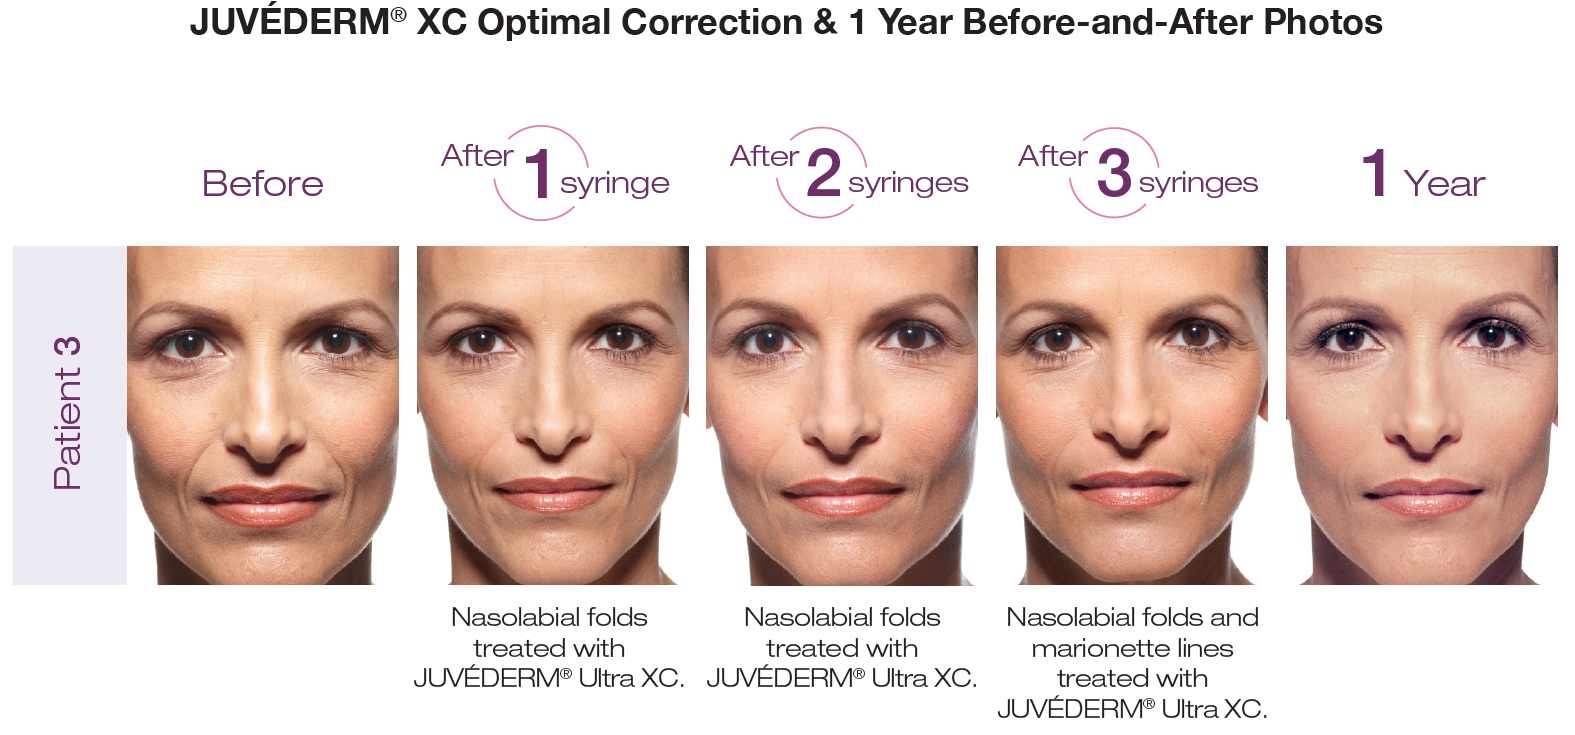 Juvederm XC fillers at Azura Skin Care Center - Cary, NC